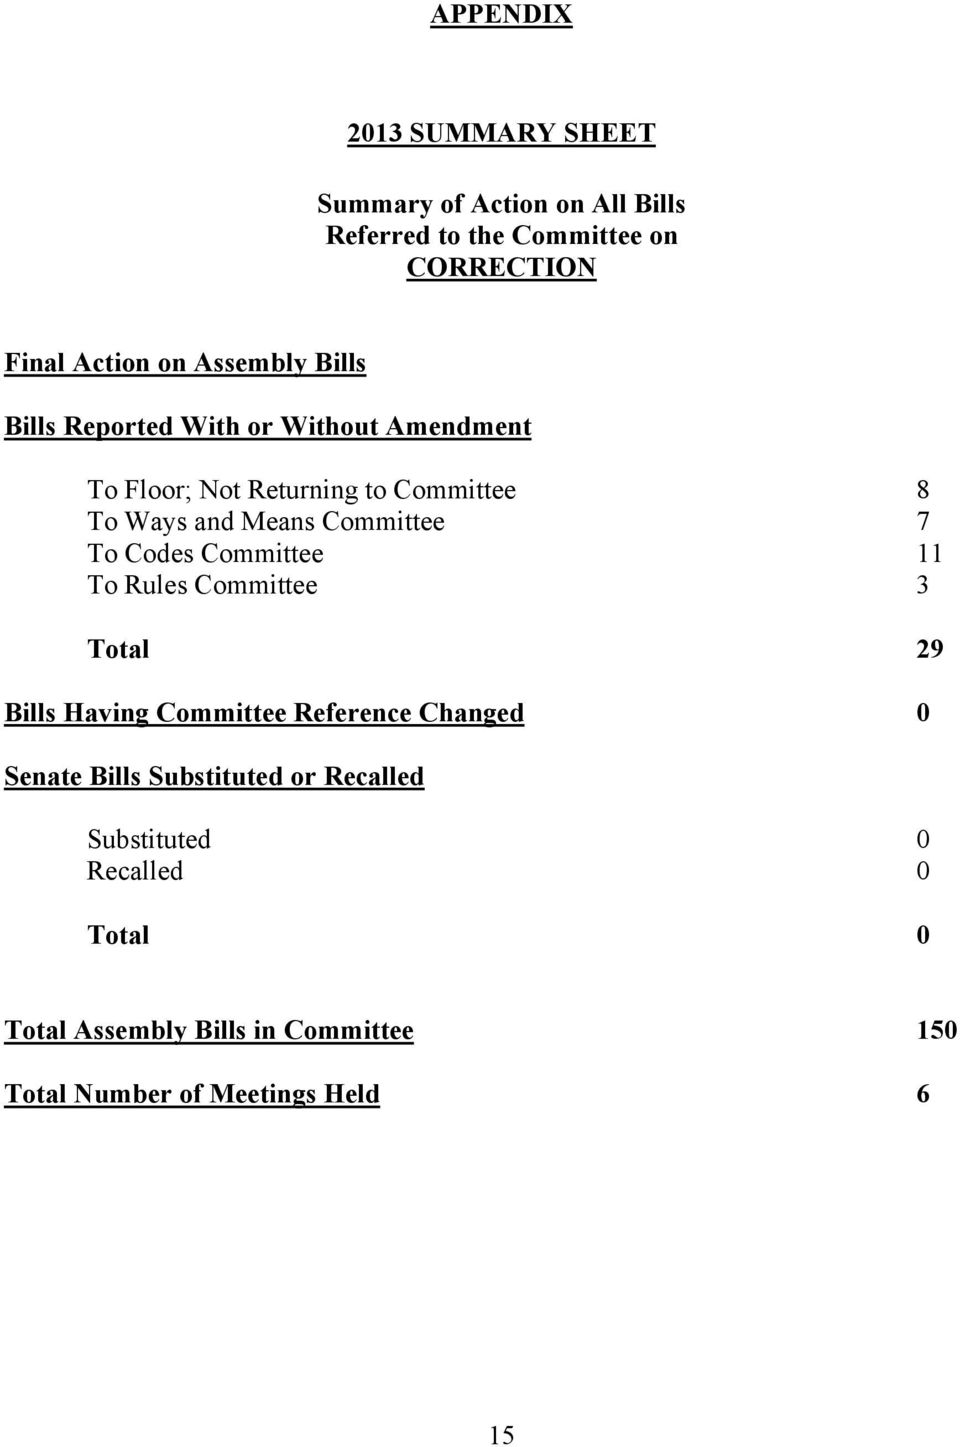 Committee 7 To Codes Committee 11 To Rules Committee 3 Total 29 Bills Having Committee Reference Changed 0 Senate Bills